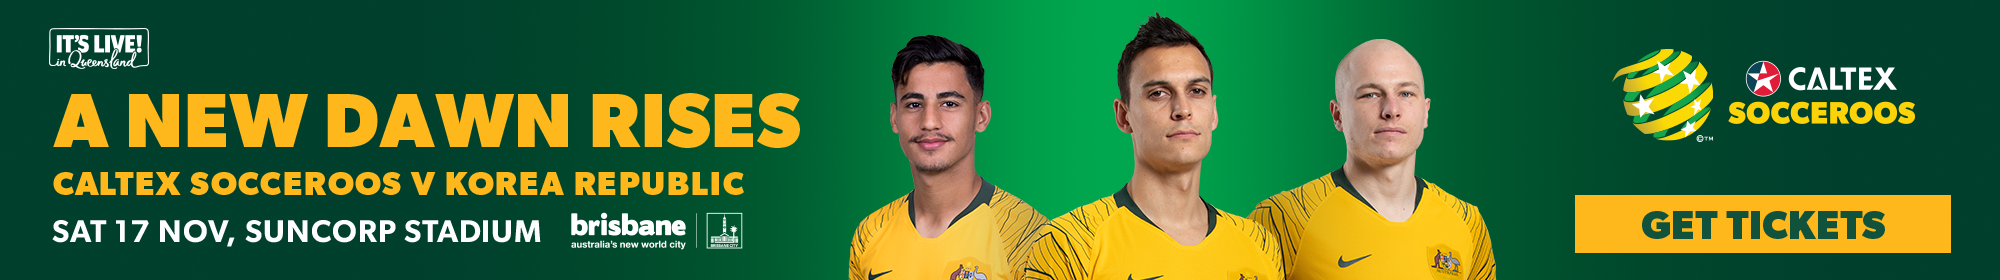 Secure your Caltex Socceroos tickets!